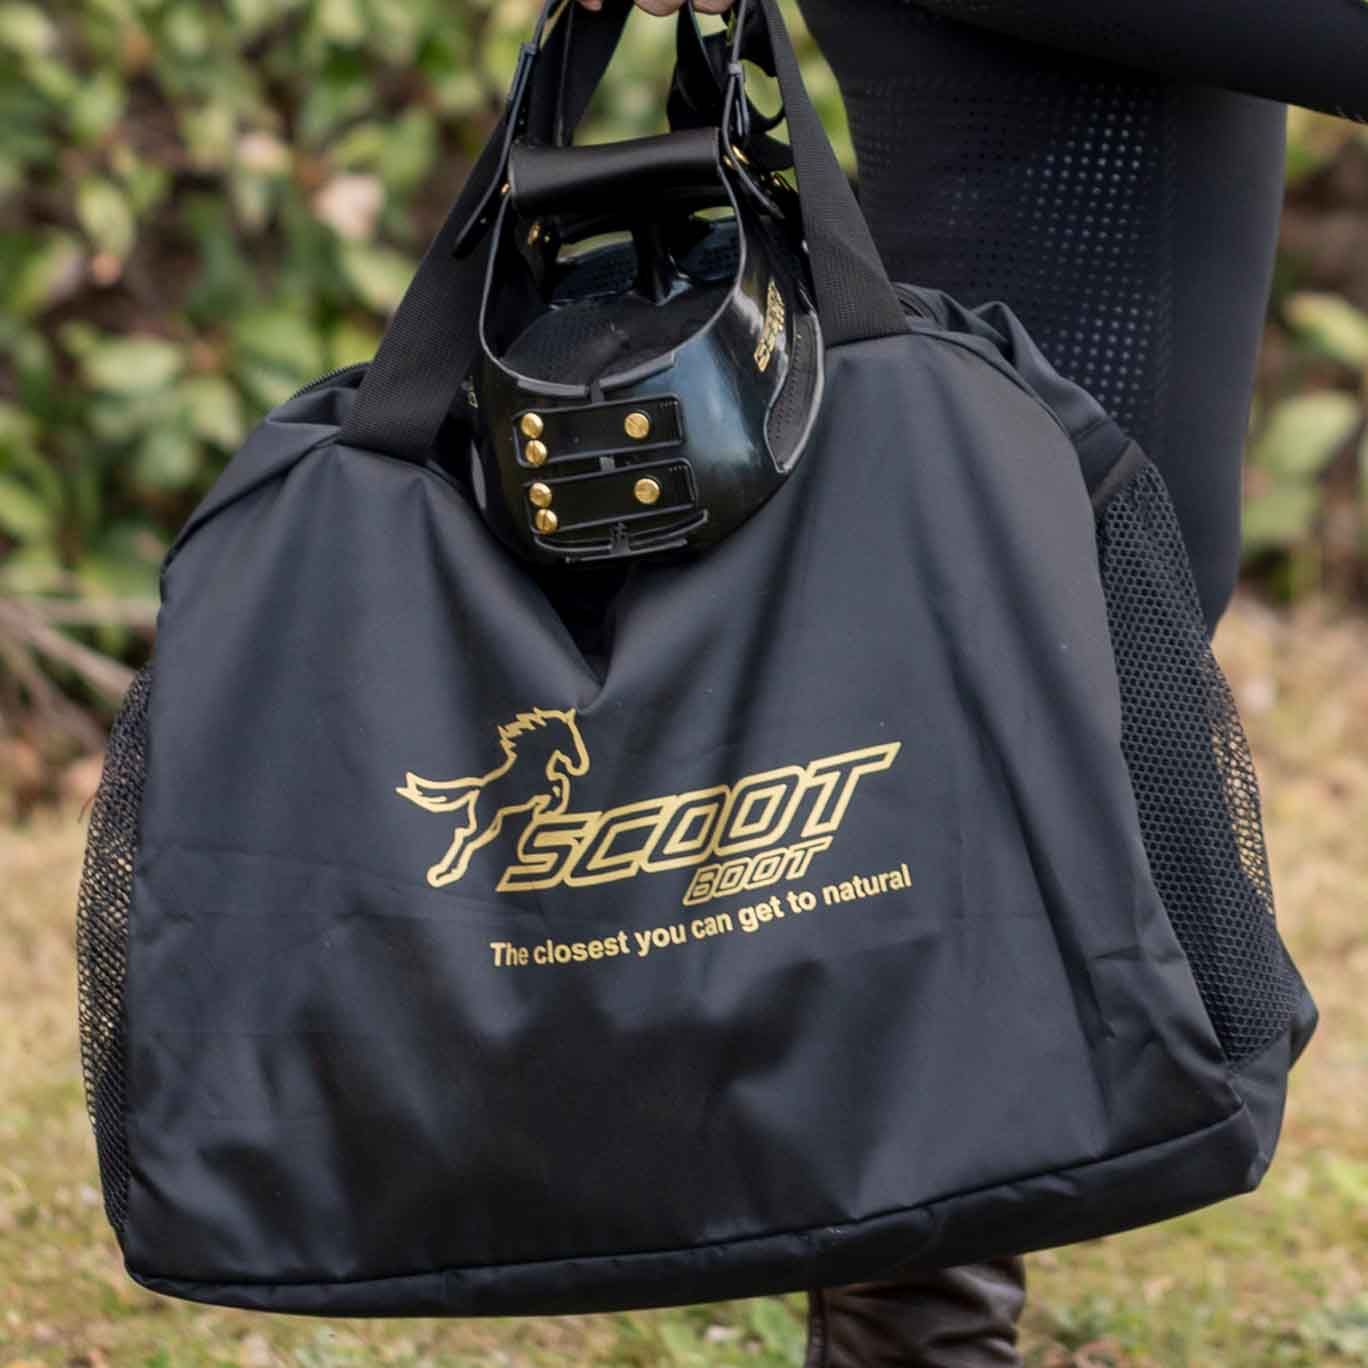 Scoot Bag